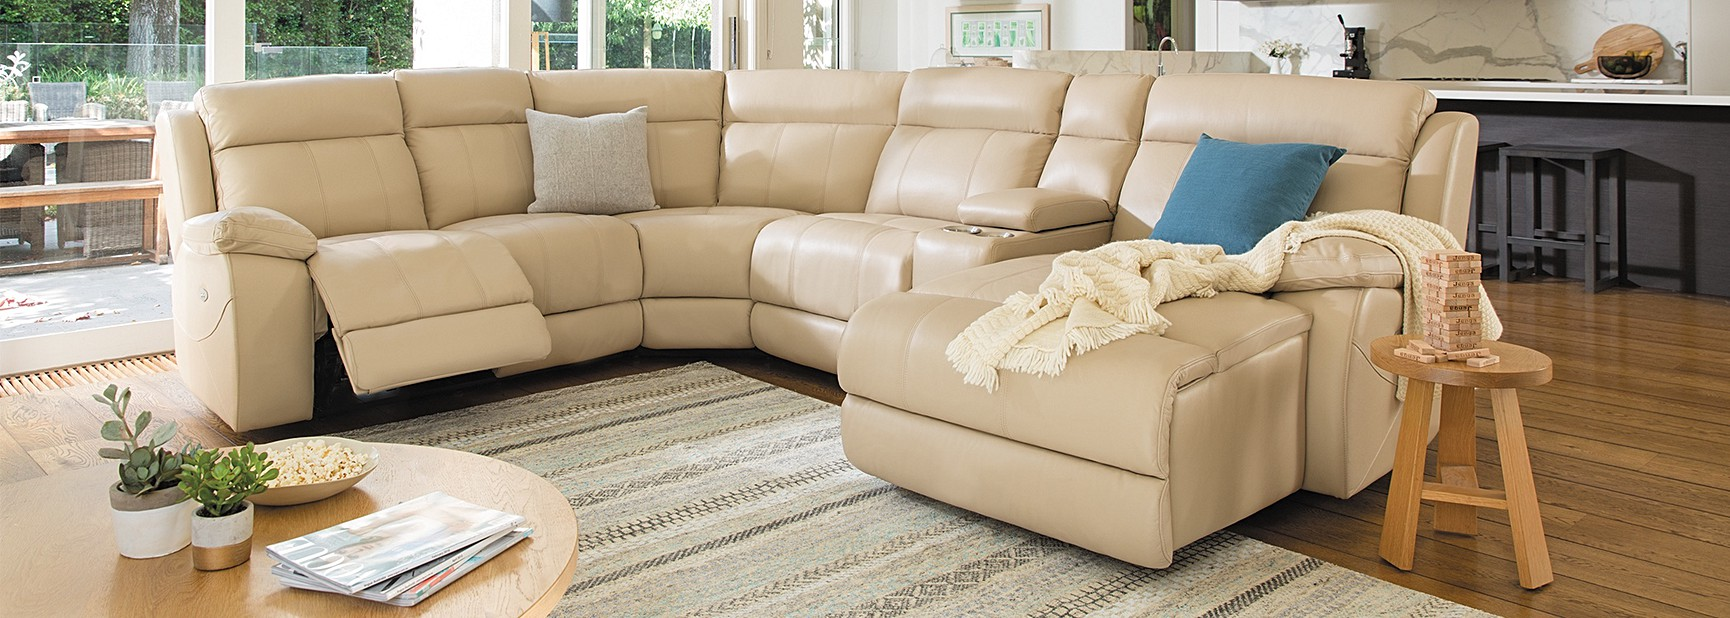 Recliners Recliner Lounges Amp Recliner Chairs Plush